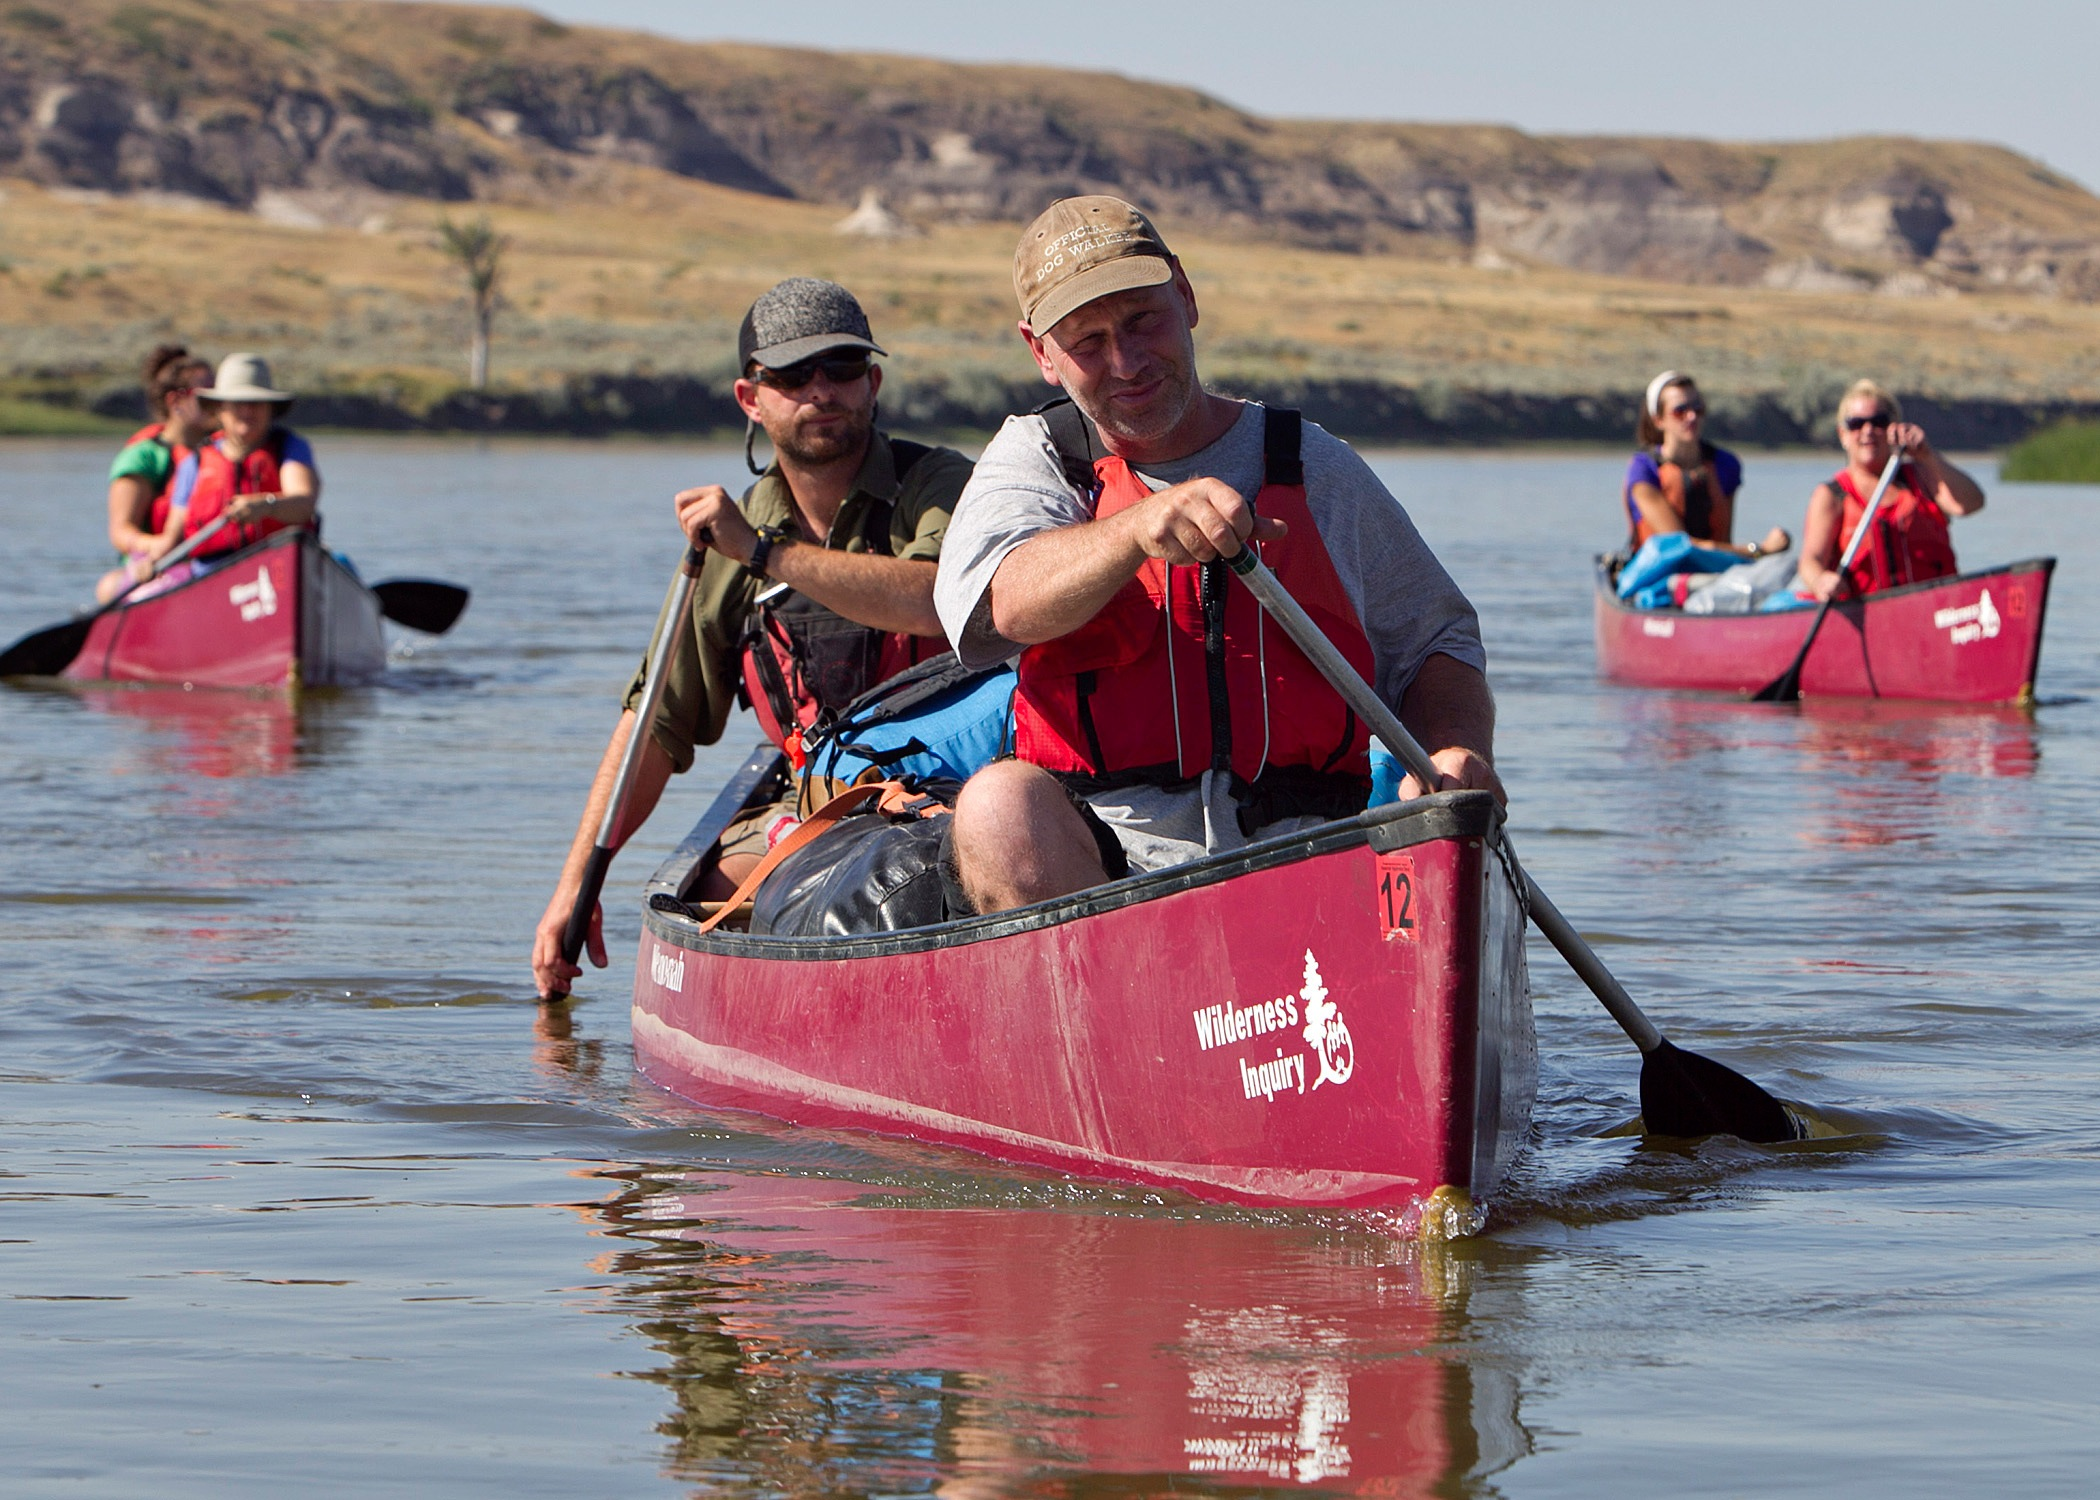 Three red Wilderness Inquiry tandem canoes paddle the Missouri River with cliffs in the background.